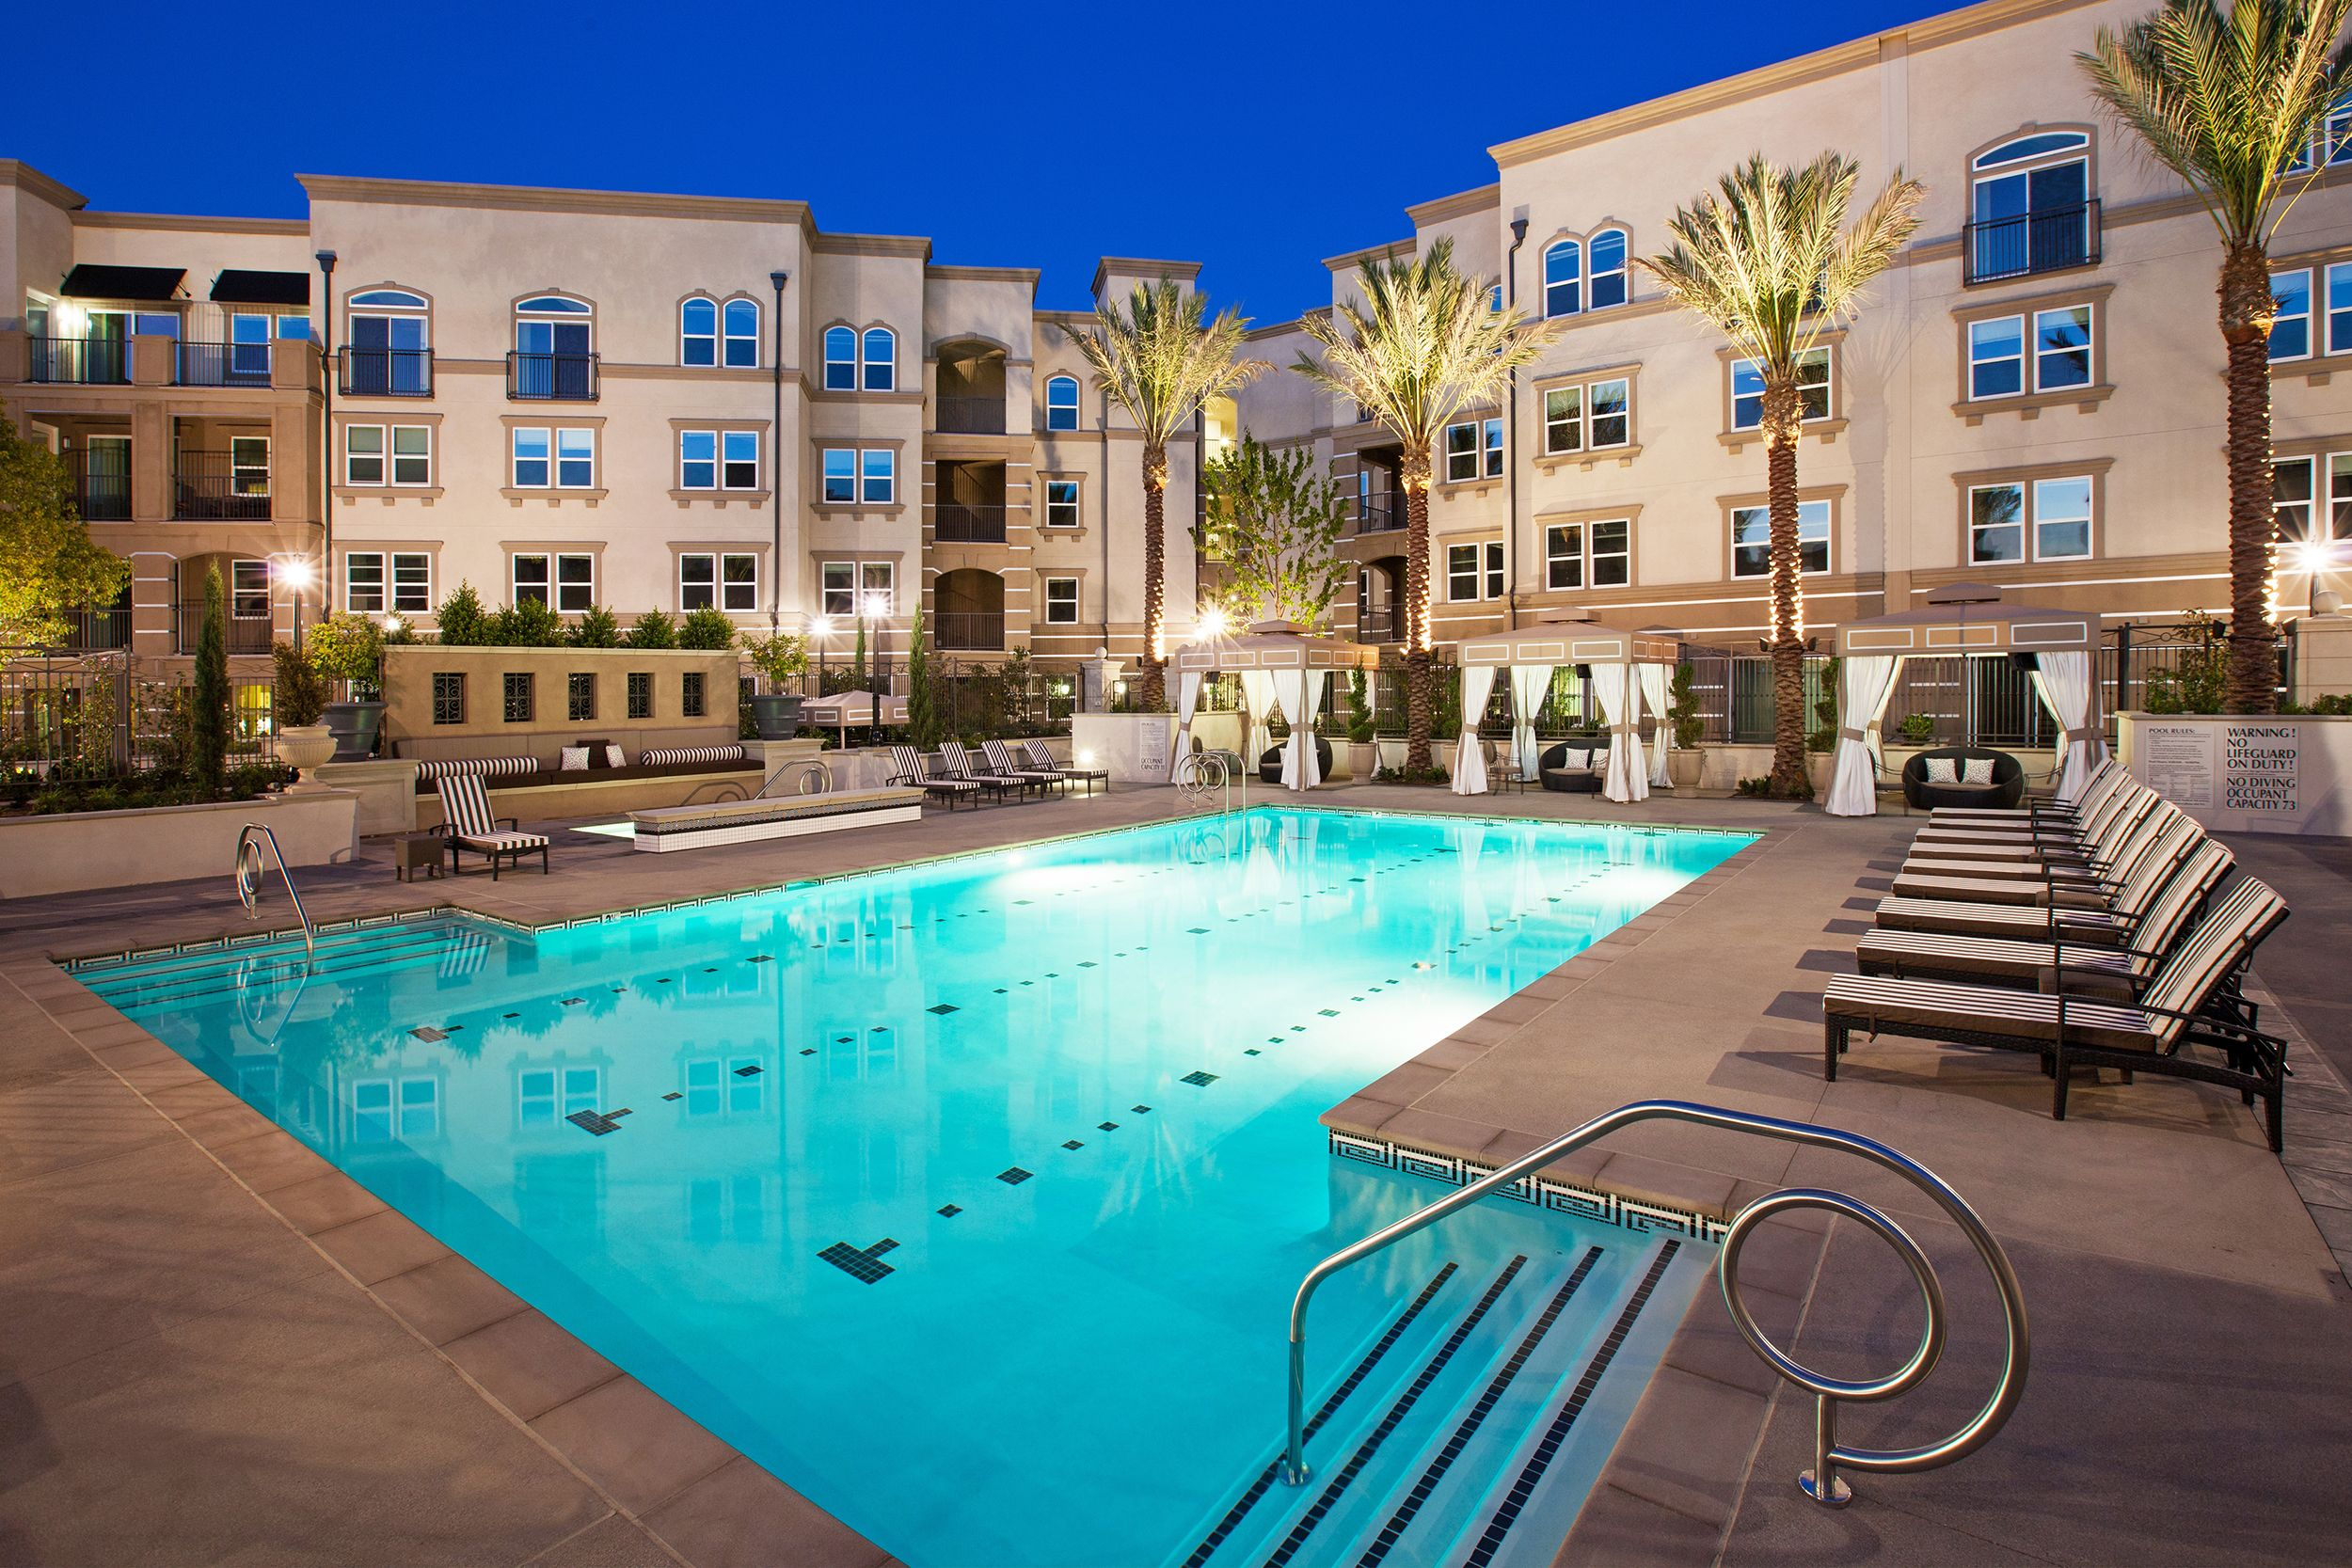 Enjoy A Night Swim At The Carlyle Pool Apartment Pool California Apartment 2 Bedroom Apartment